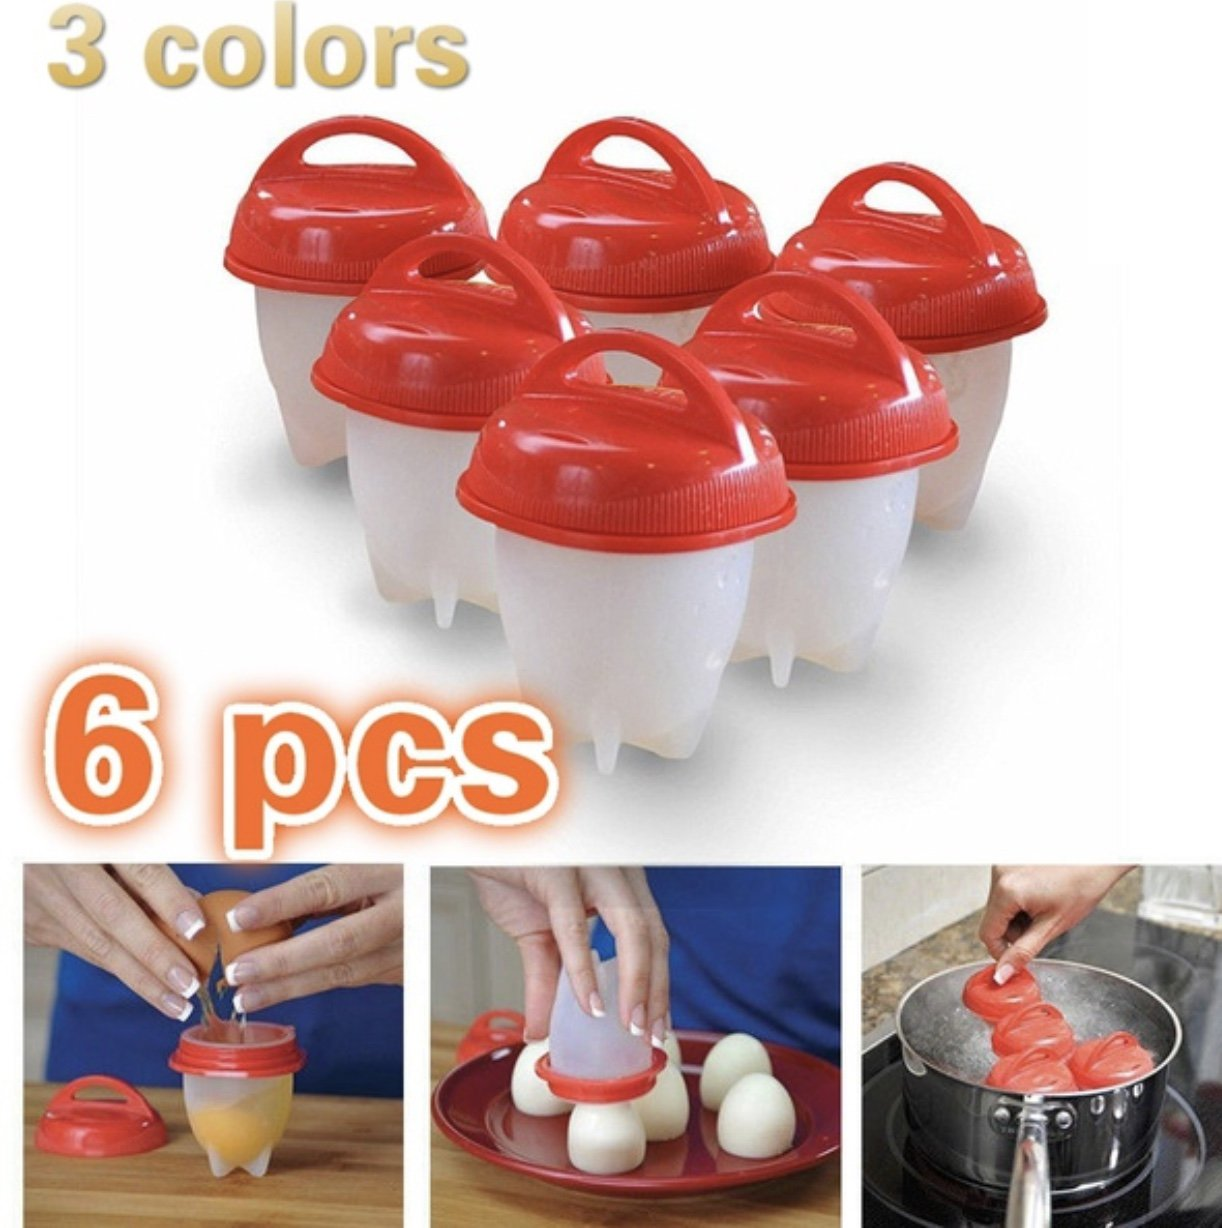 Silicone Egg Cooker, Hard and Soft without Shell Egg Boil, As Seen on TV, BPA free, 6 pack with Egg Separator